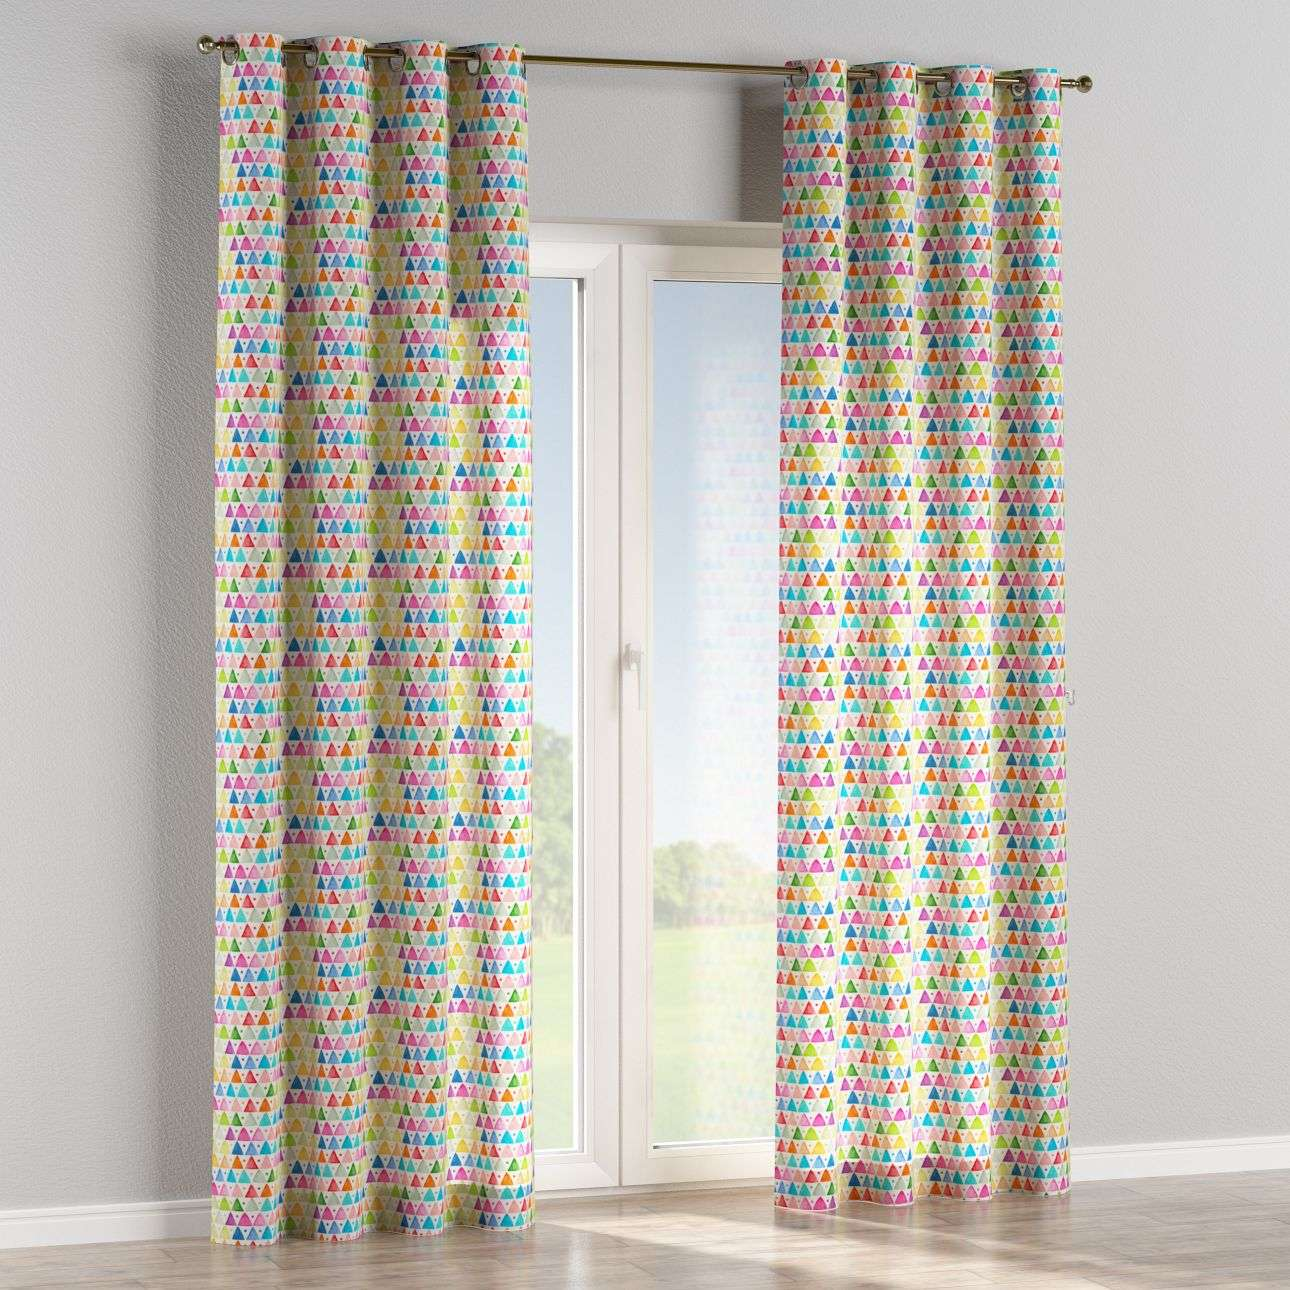 Eyelet curtains 130 × 260 cm (51 × 102 inch) in collection New Art, fabric: 140-27